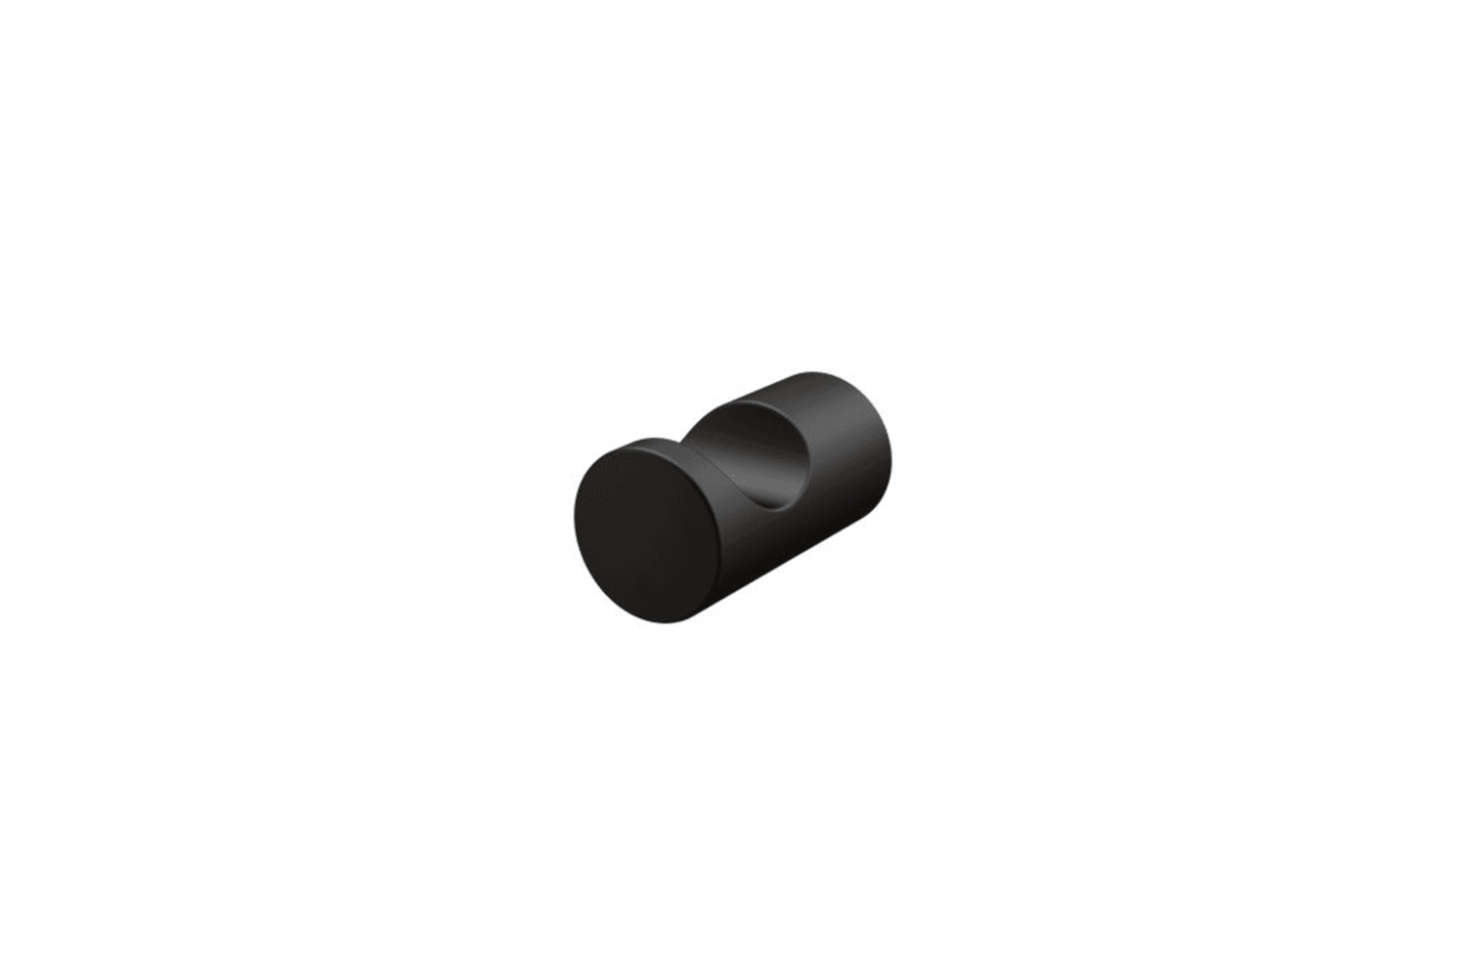 The Moen Wall Hook, shown in Matte Black, is $25.54 at Build.com.